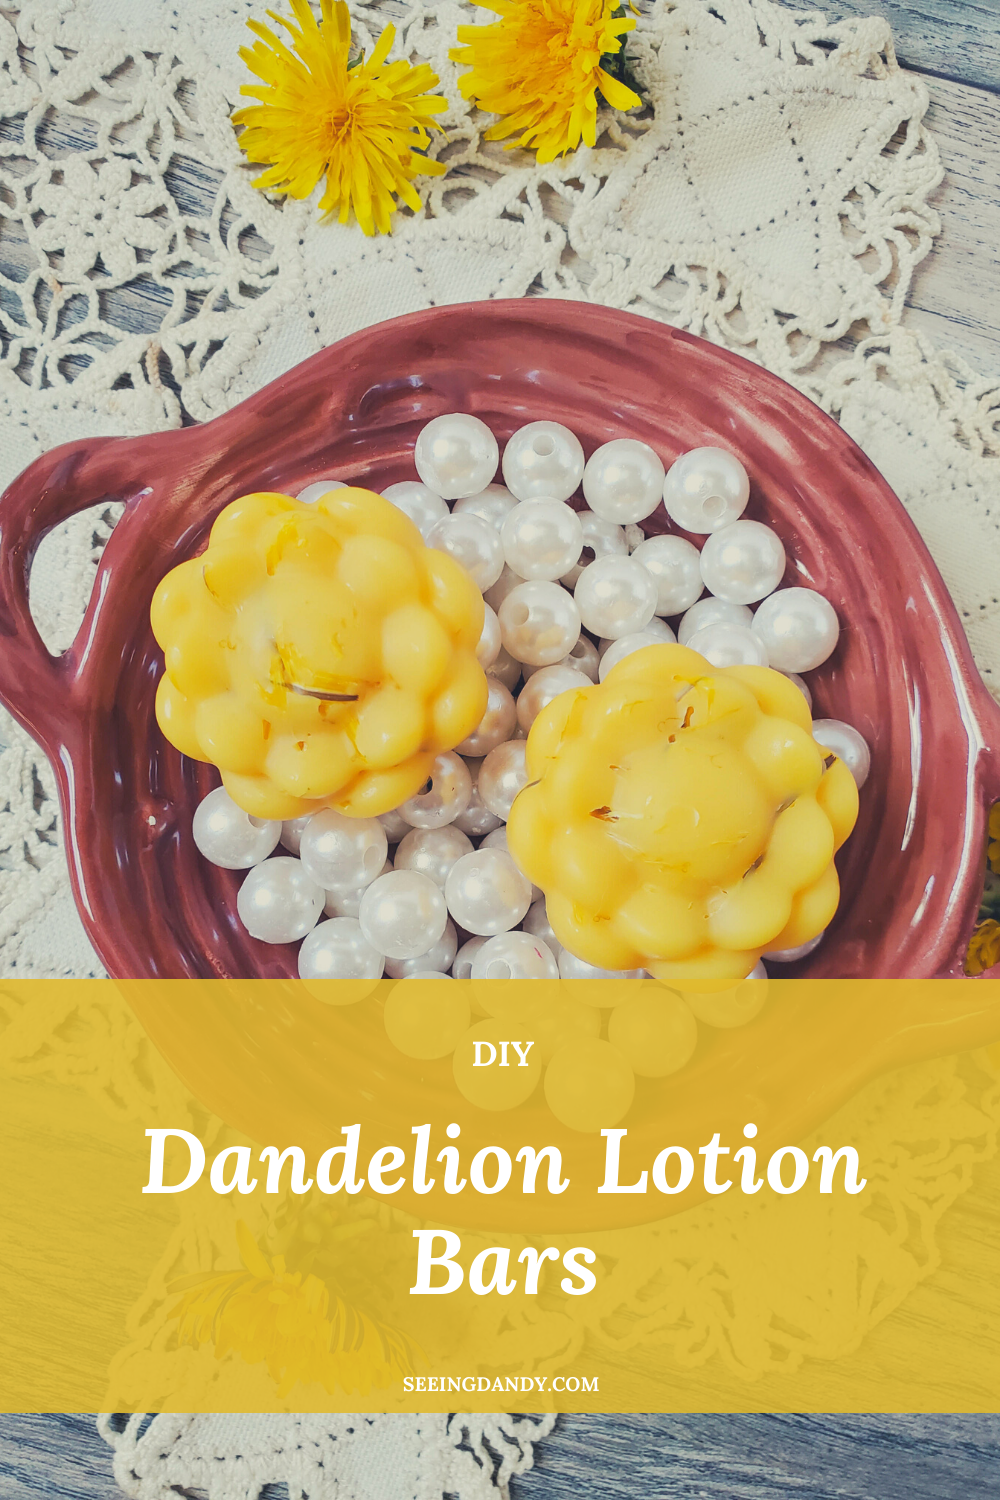 dandelion lotion bars, white pearls, yellow dandelion flowers, red ceramic dish, antique lace doily, diy beauty recipe, diy lotion, dandelion flowers, summer flower, beauty recipes, farmhouse table